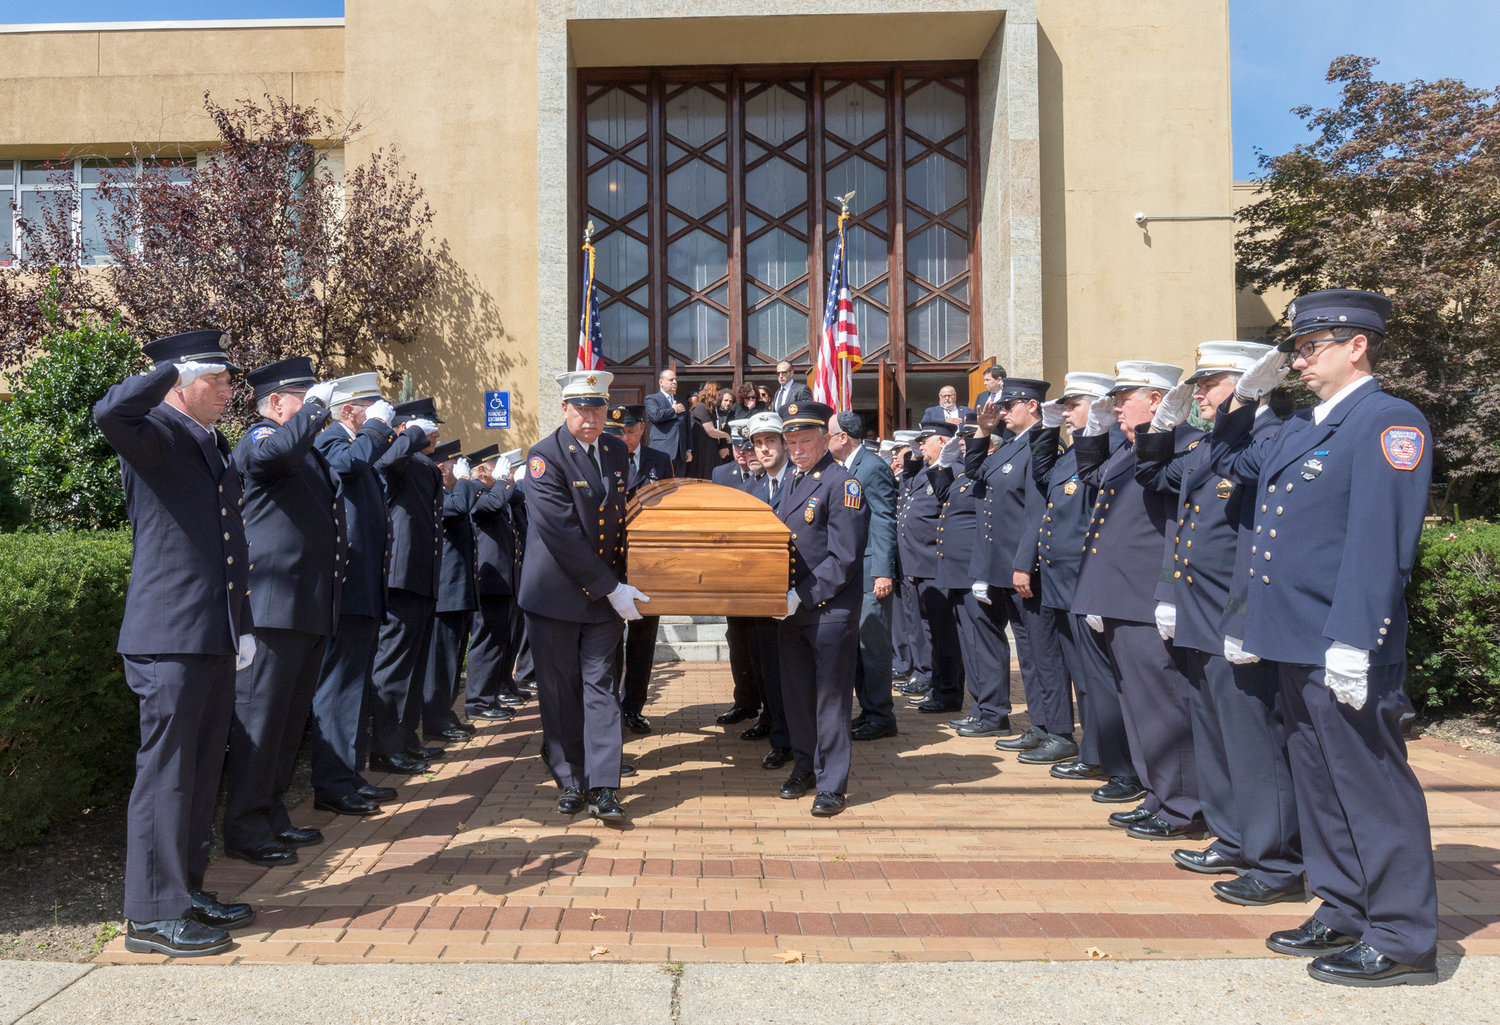 Ed Oppenheimer was laid to rest on Friday, Sept. 20.